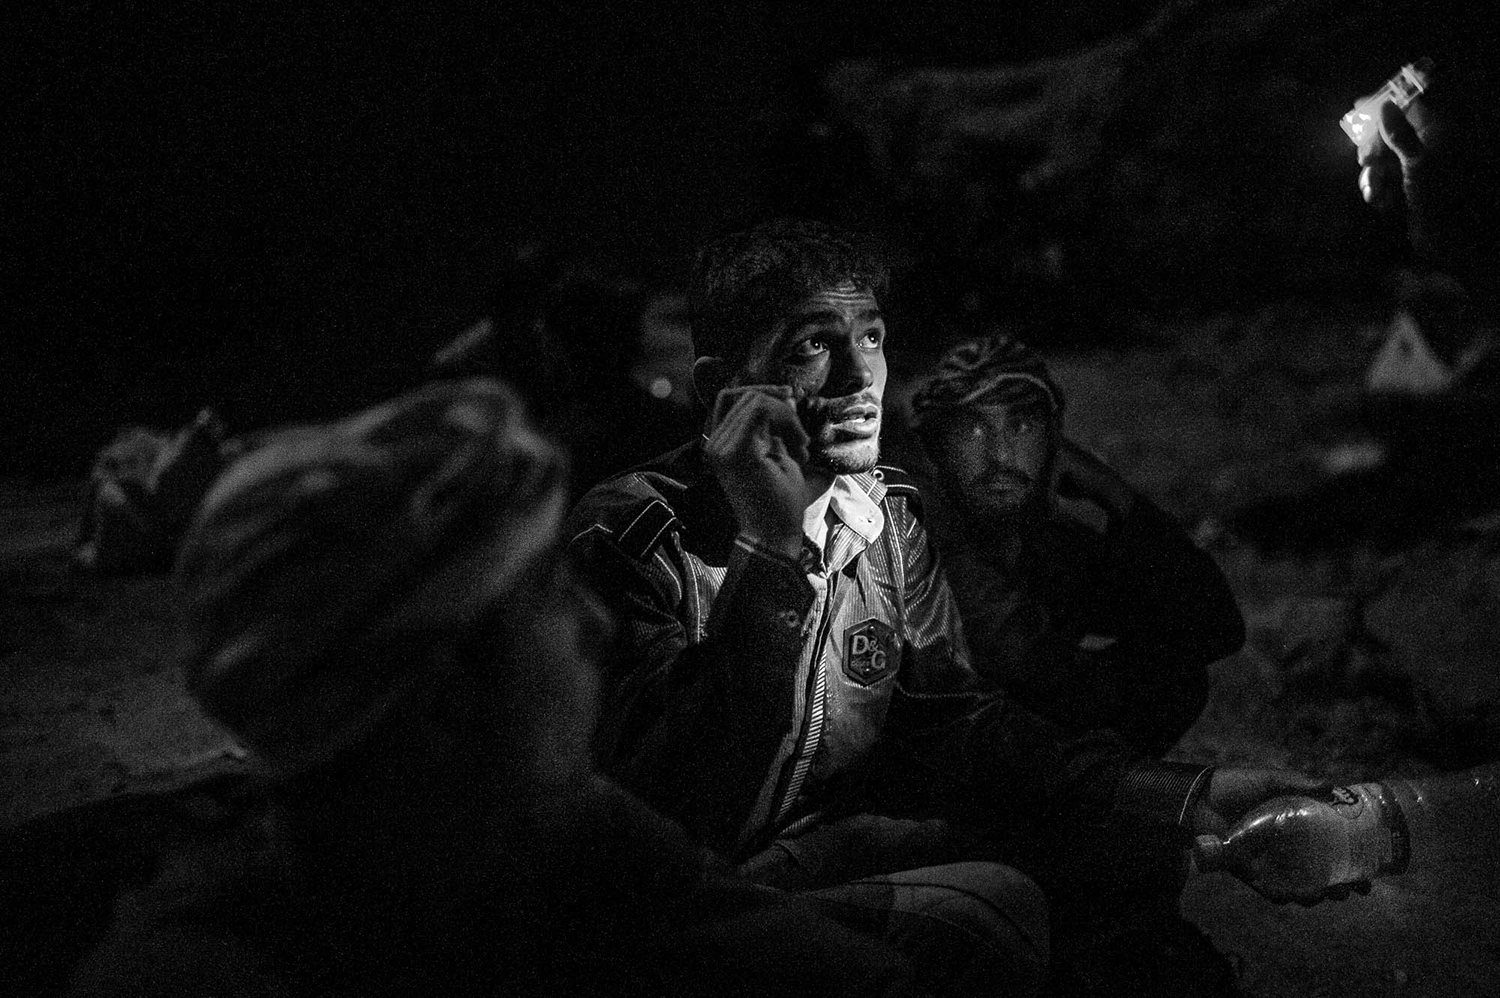 August 2017  The Afghan refugees who is begging for not being arrested, he gives his knife to his boss because they donÕt have any permission to carry any cold weapon with them, refugees will have a lot of problems by entering in Iran, as get abduction by robbers and asking for money from their families or using of them as workers. They have no definite future.